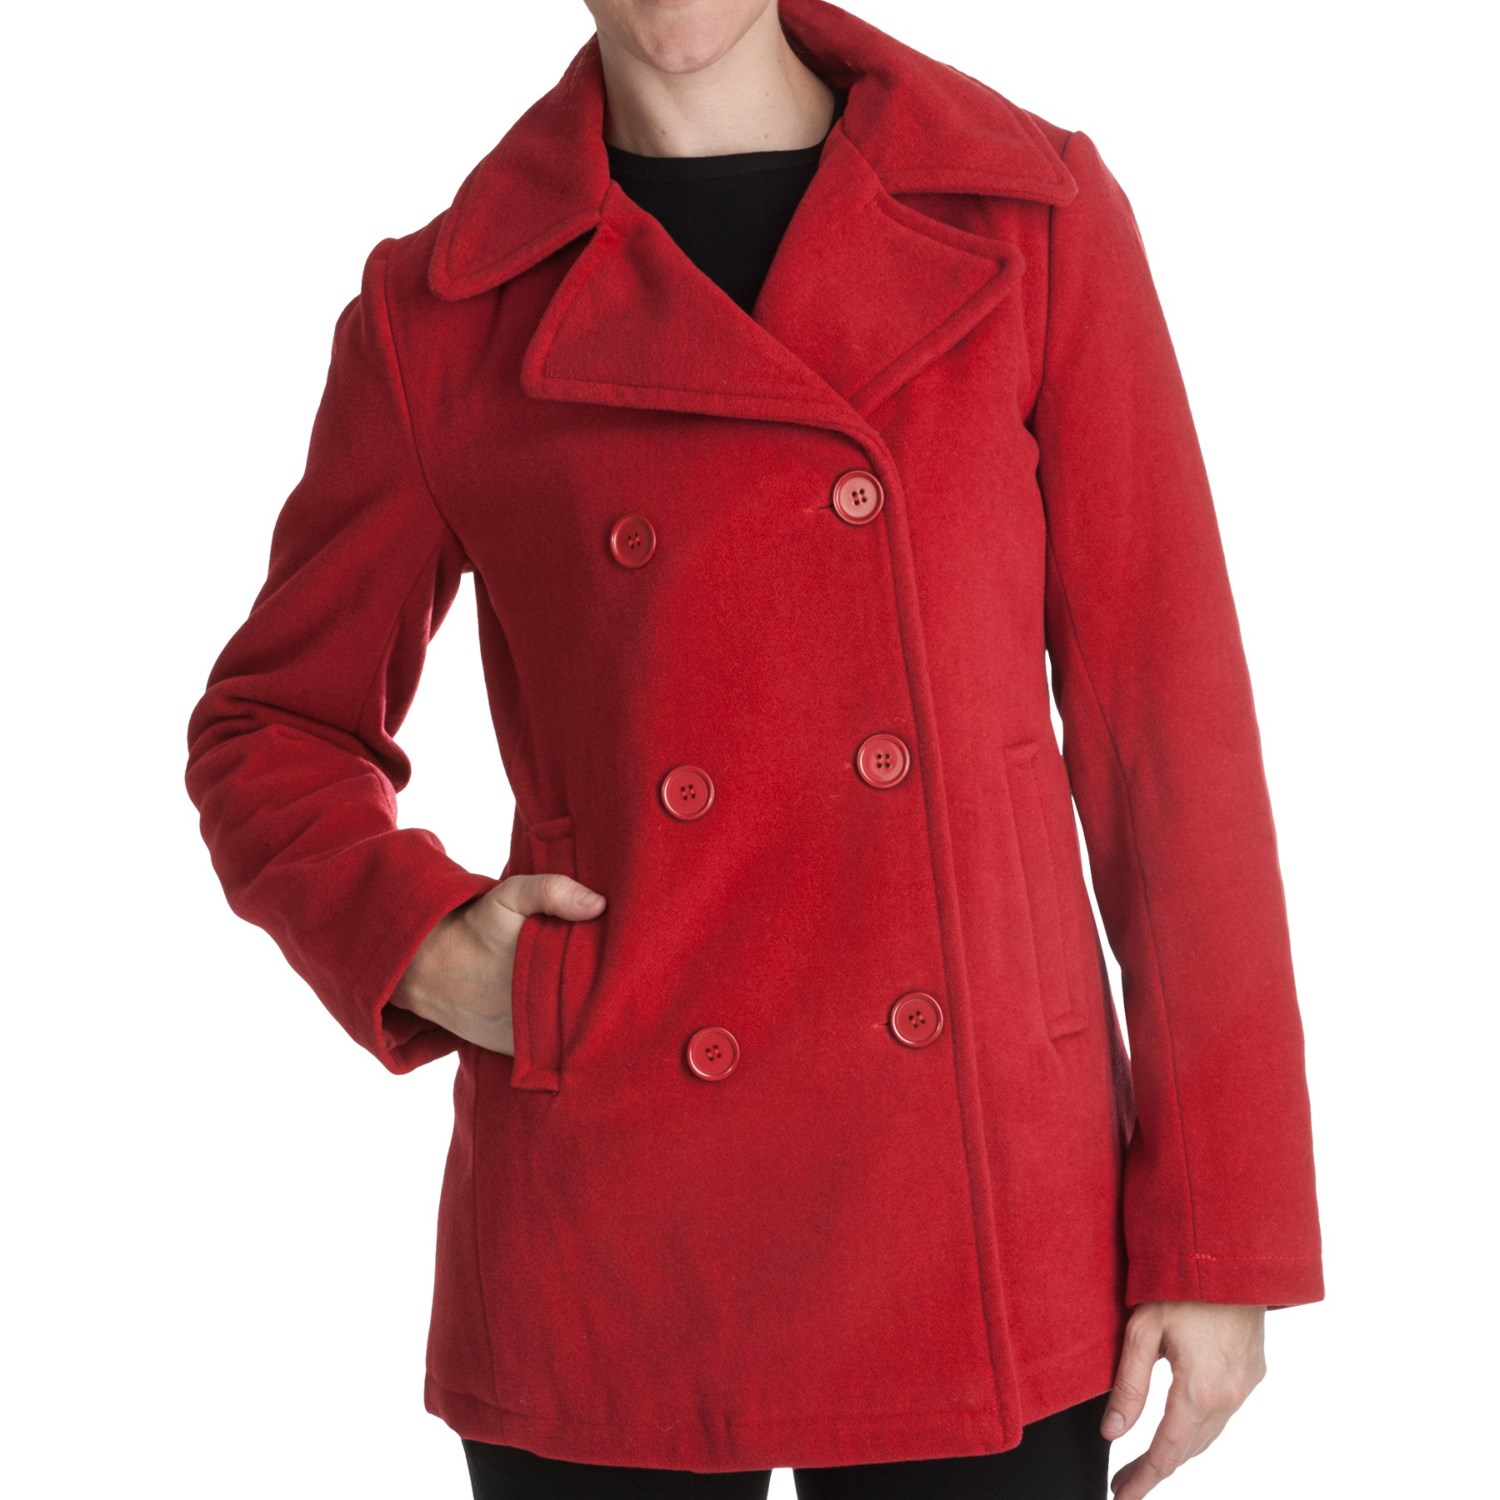 Womens Vintage Coat- Long Coat- Pea Coat- Winter Coat- Red Coat- Maxi Coat- Dress coat- Swing Coat- Ladies Coat- Vintage Pea Coat- 70s union Find this Pin and more on Misc. Stuff I Want/Like by Stephanie Spino Wright.